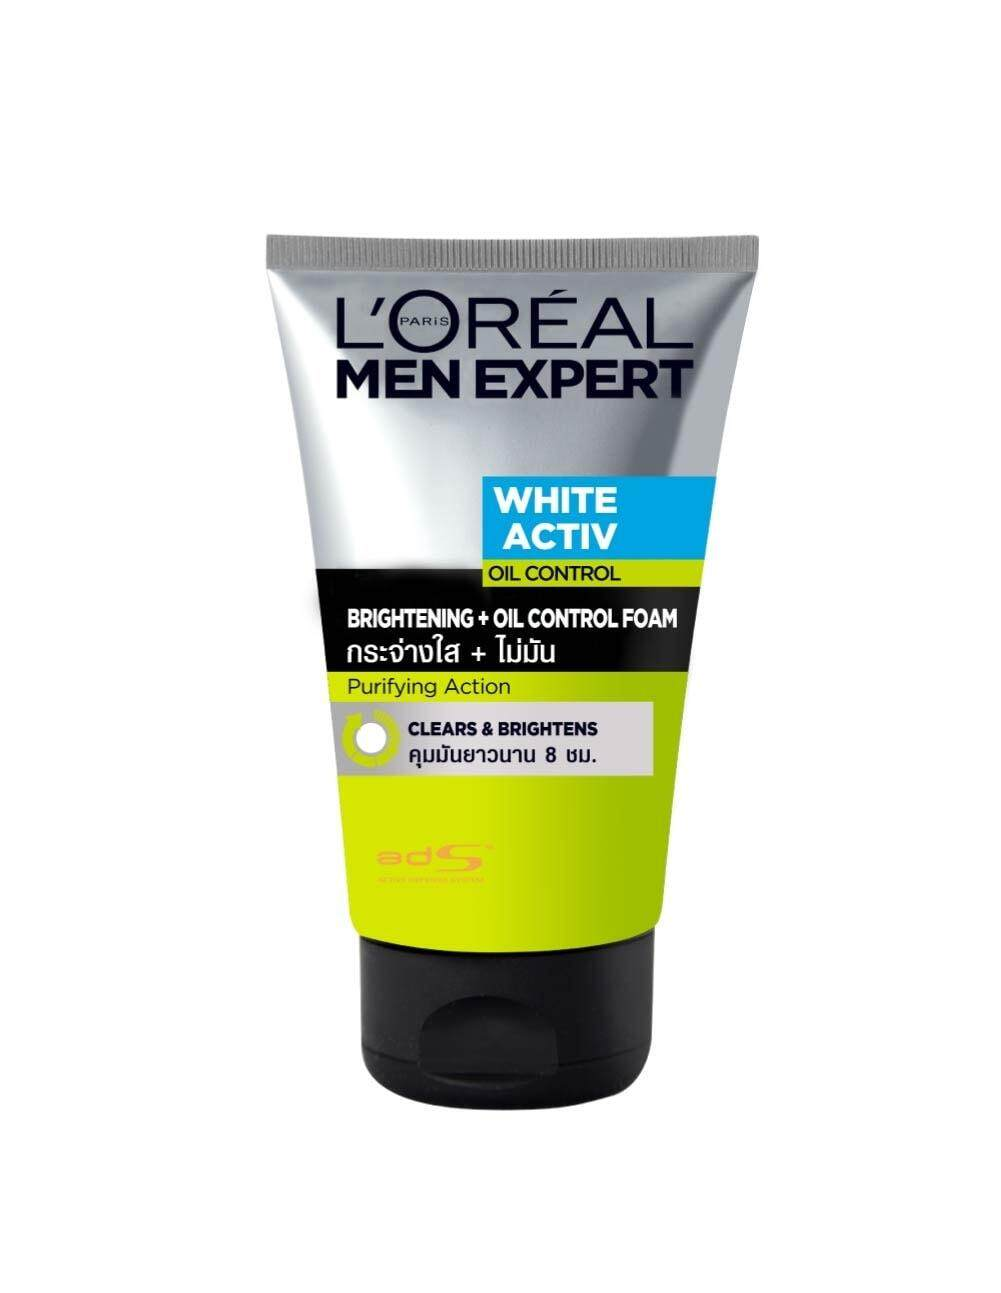 L'Oreal Men Expert White Activ Brightening With Oil Control Foam 100ml